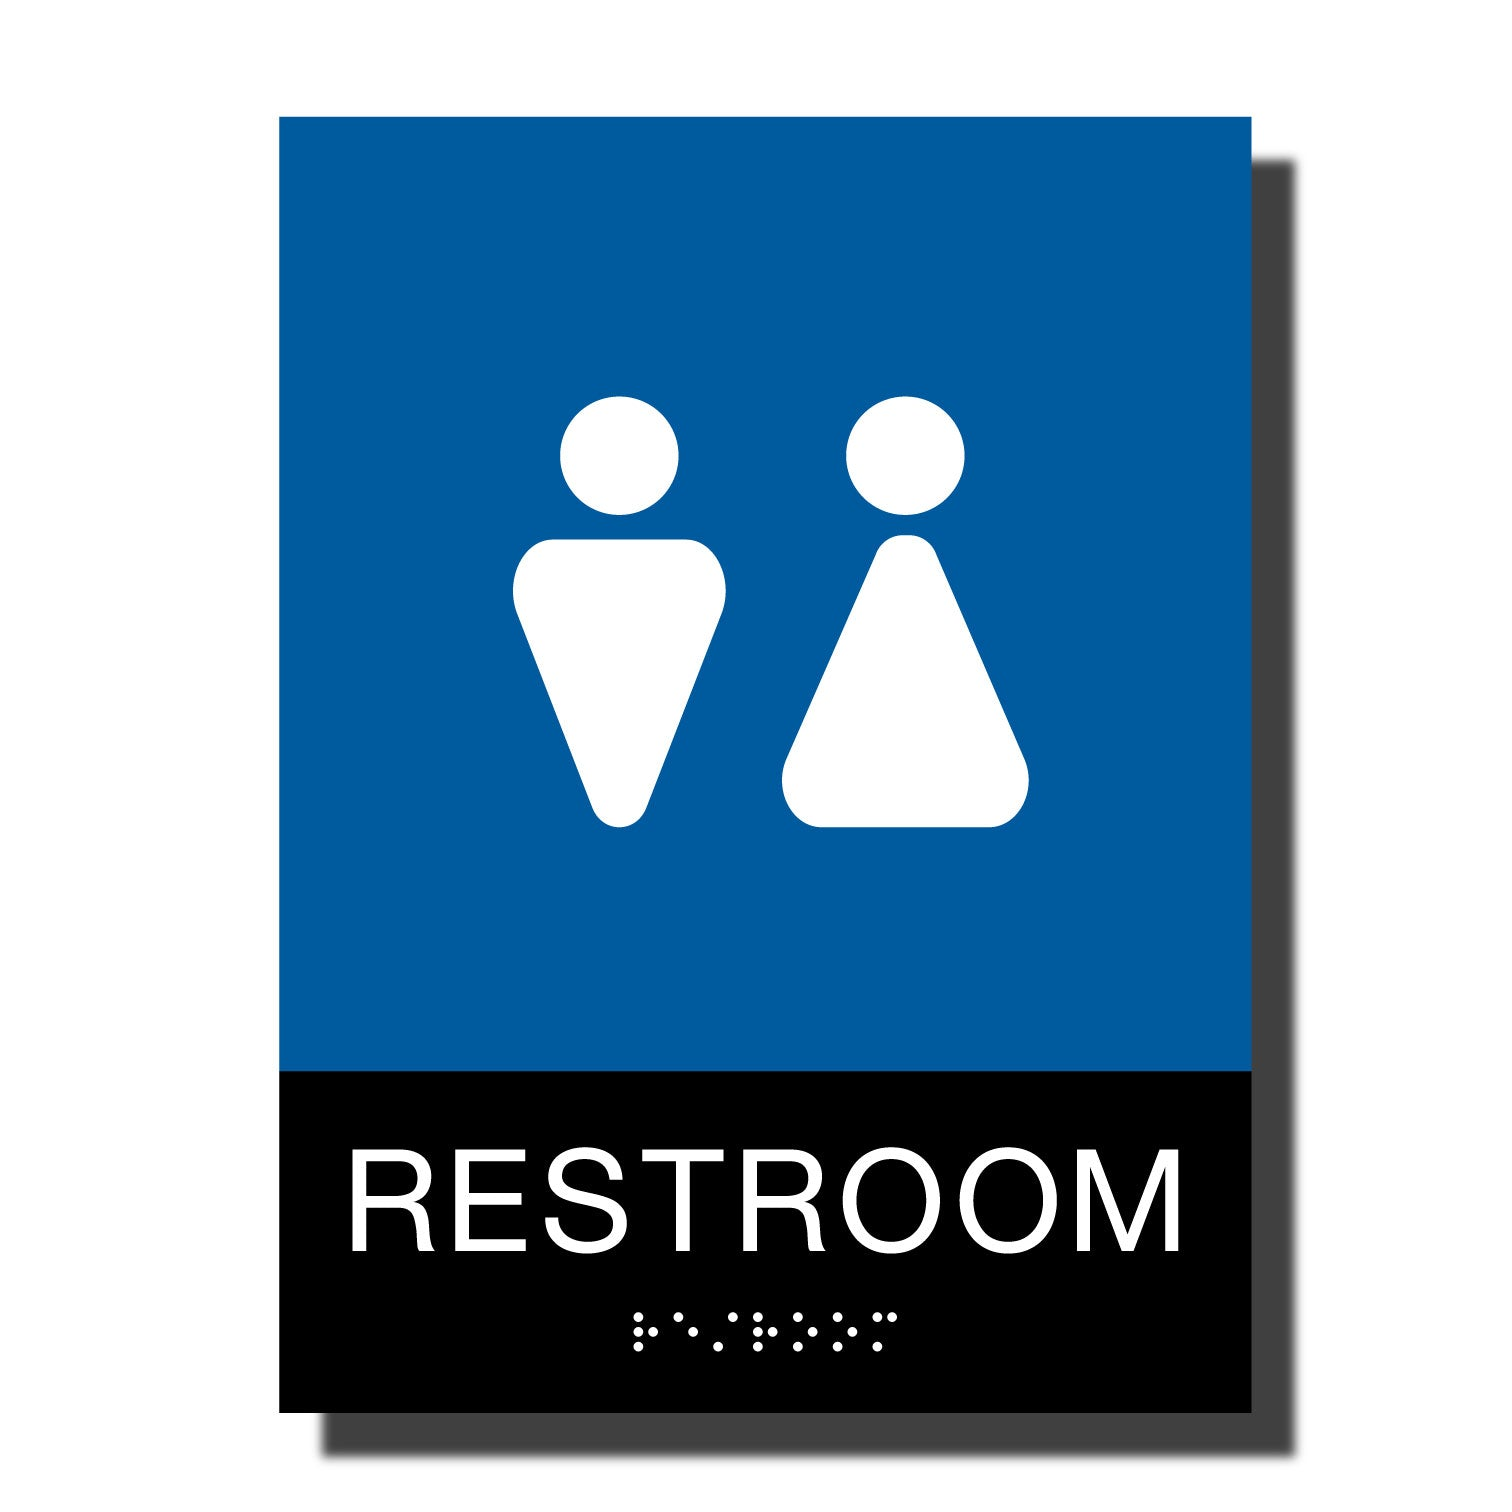 ADA Chroma Restroom Sign - NapADASigns - ADA Restroom Sign with Braille - Plastic - Chroma Collection - napadasigns